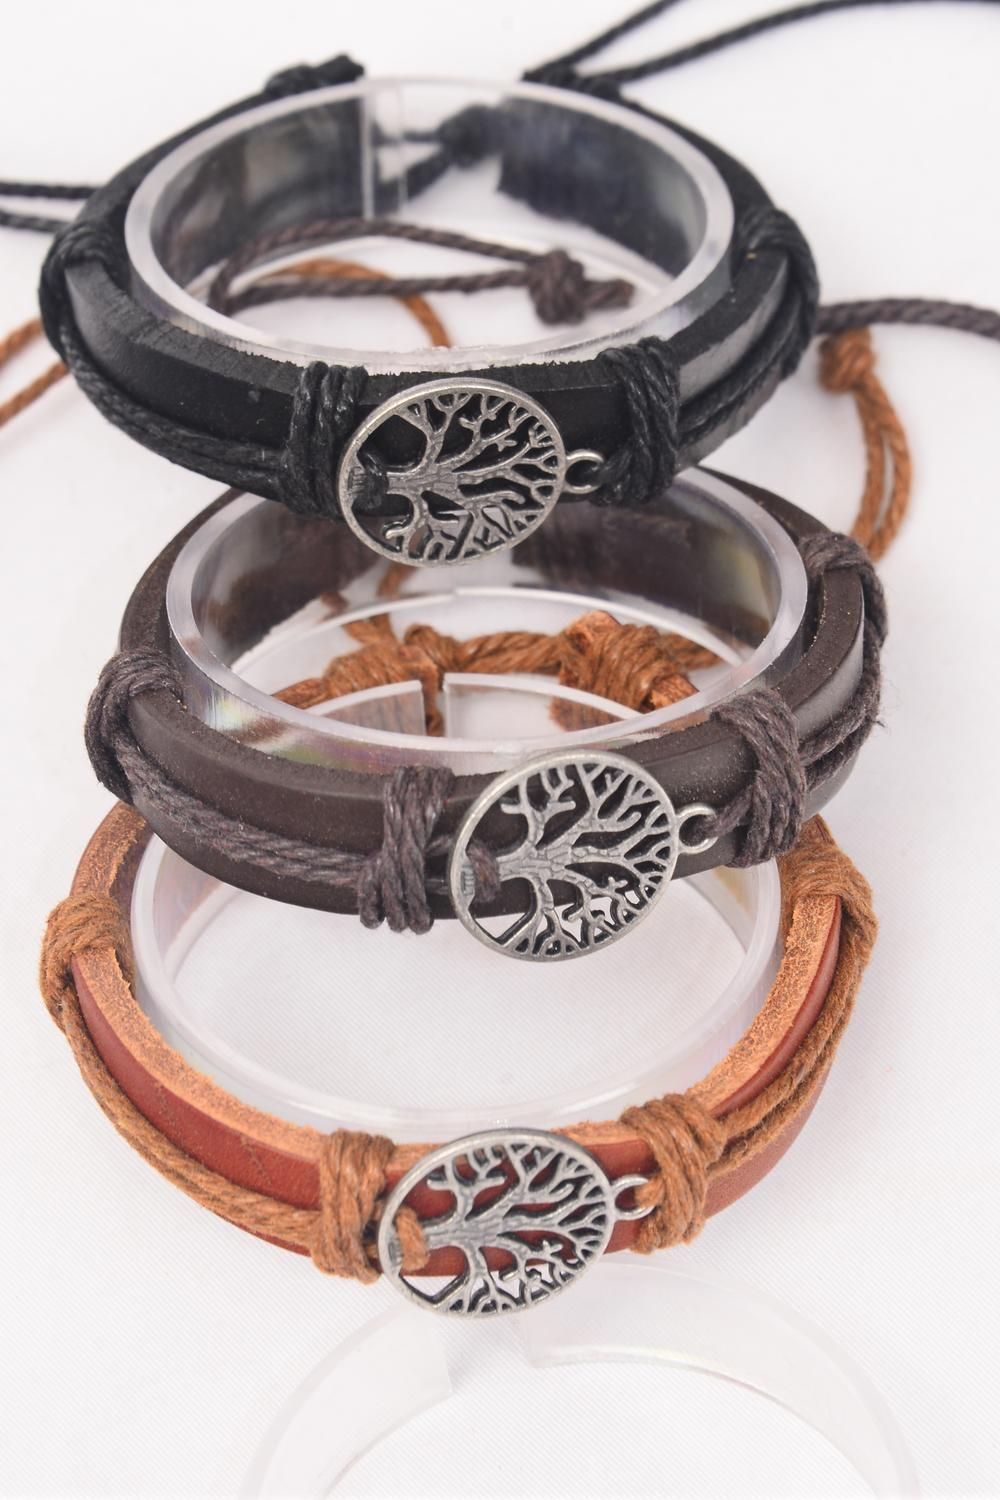 Bracelet Real Leather Tree of Life Silver/DZ **UNISEX** Adjustable,4 of each Color Asst,Hang Tag & OPP Bag & UPC Code